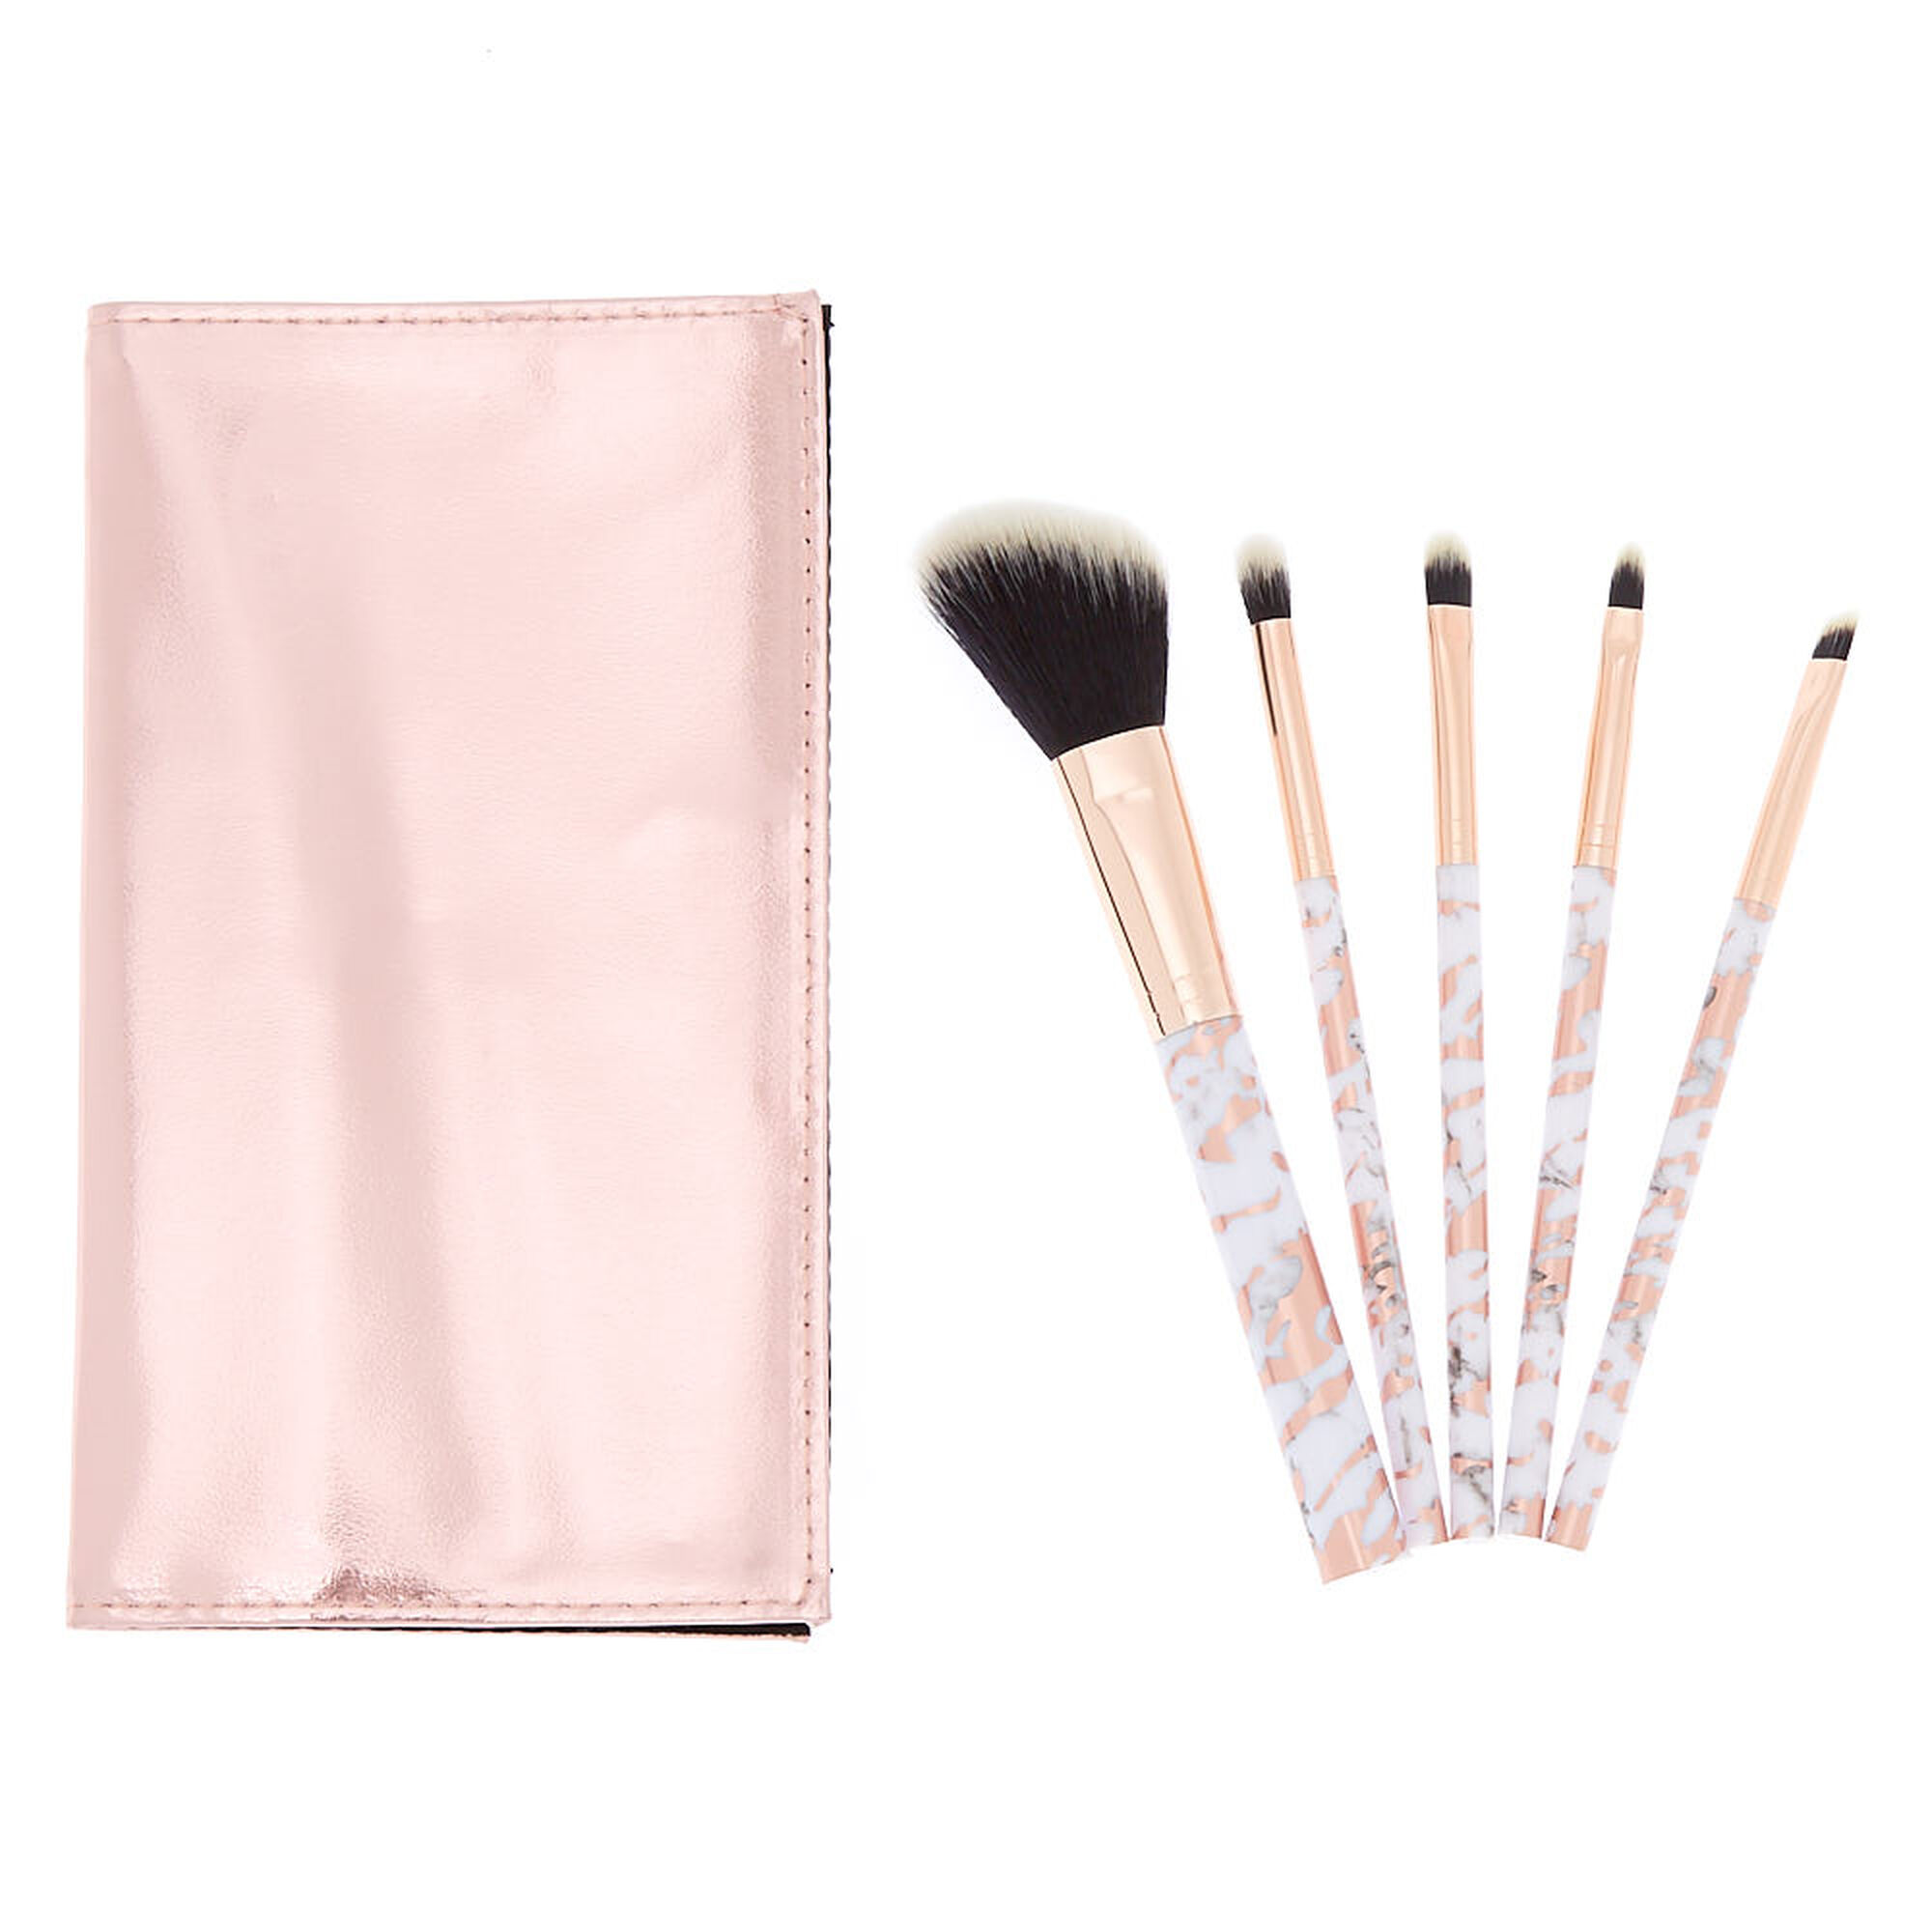 Marble Makeup Brush Set Rose Gold 5 Pack Icing Us